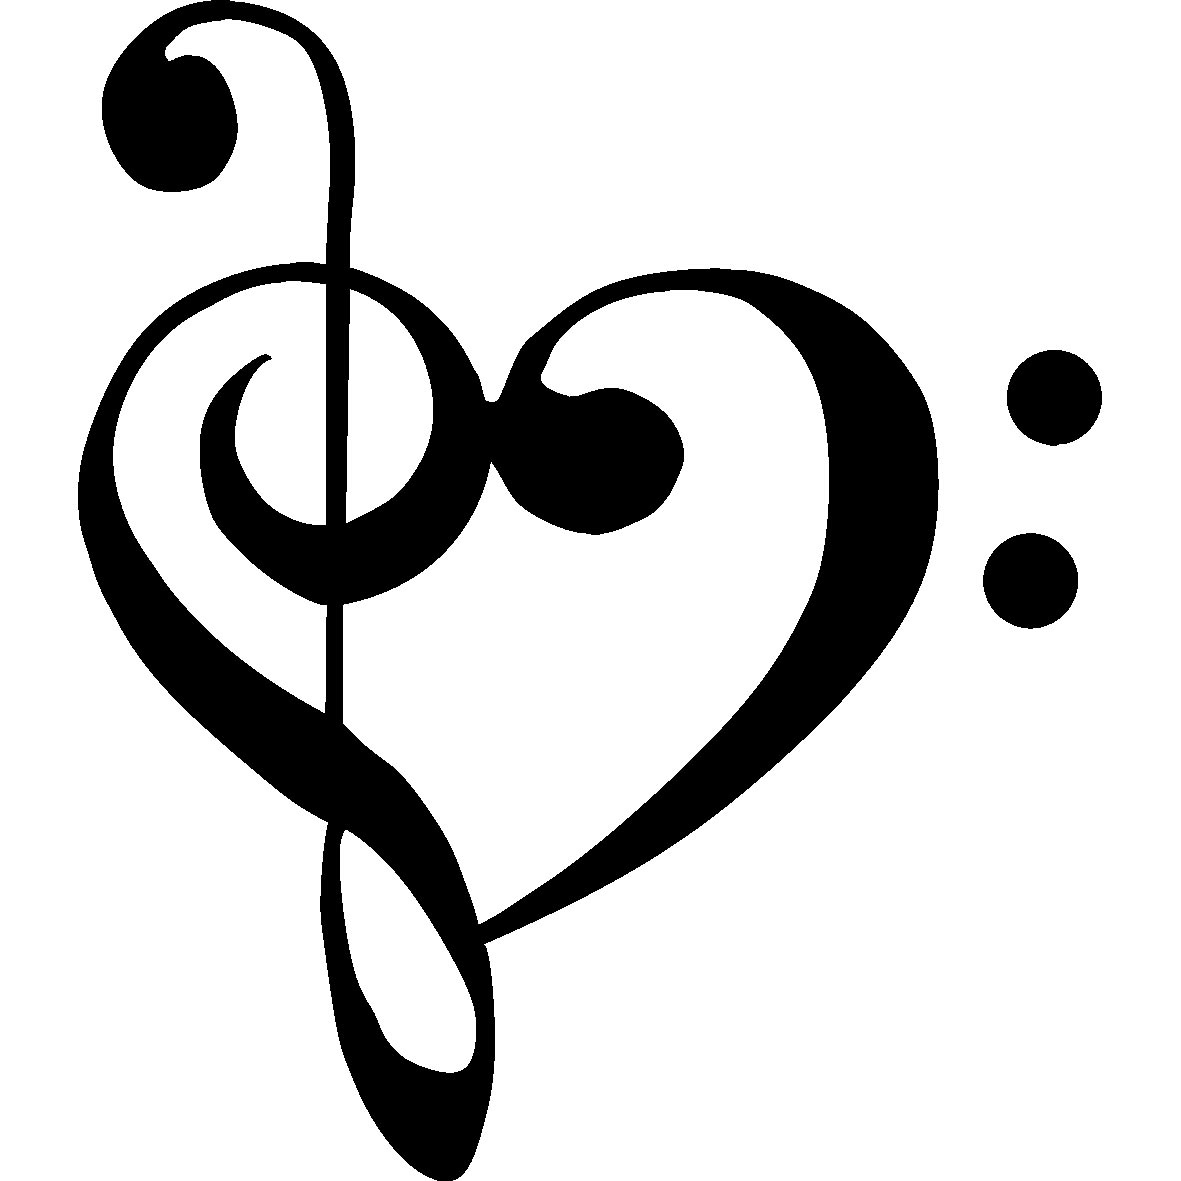 bass clef treble clef heart free images at clker com